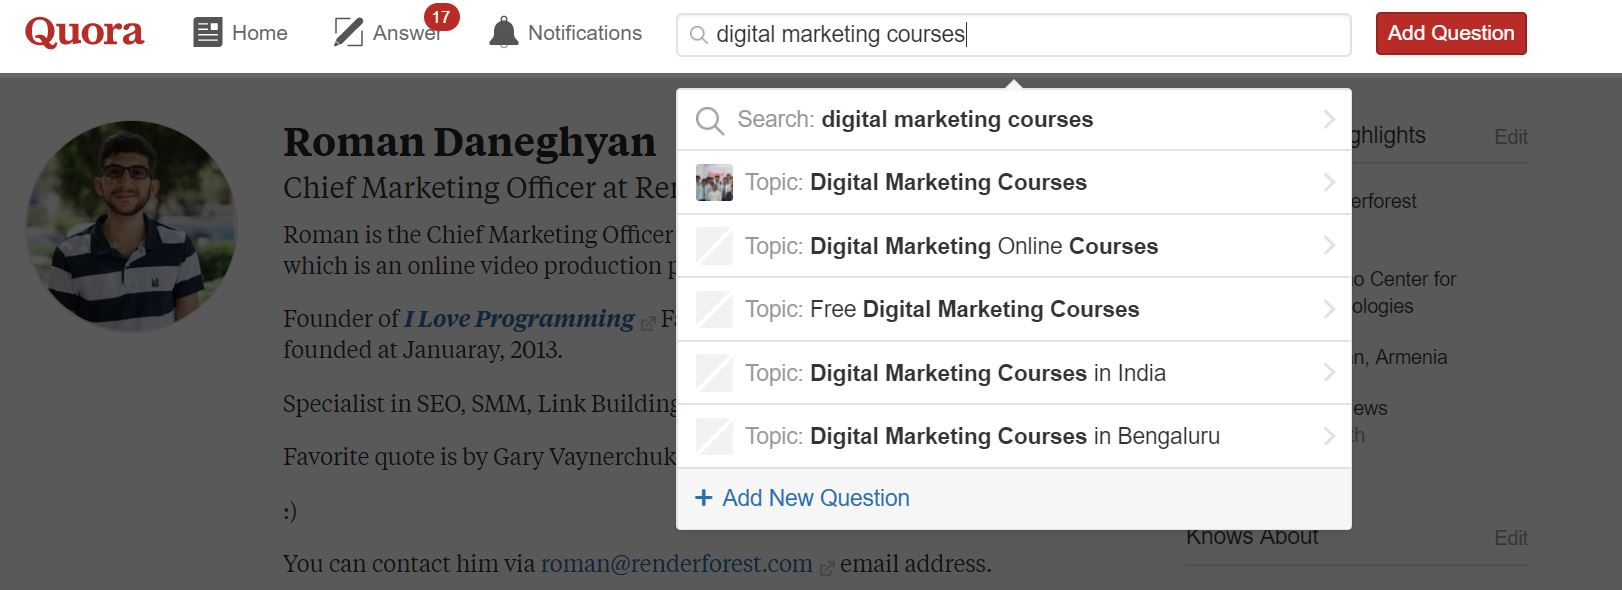 Quora Digital Marketing Courses